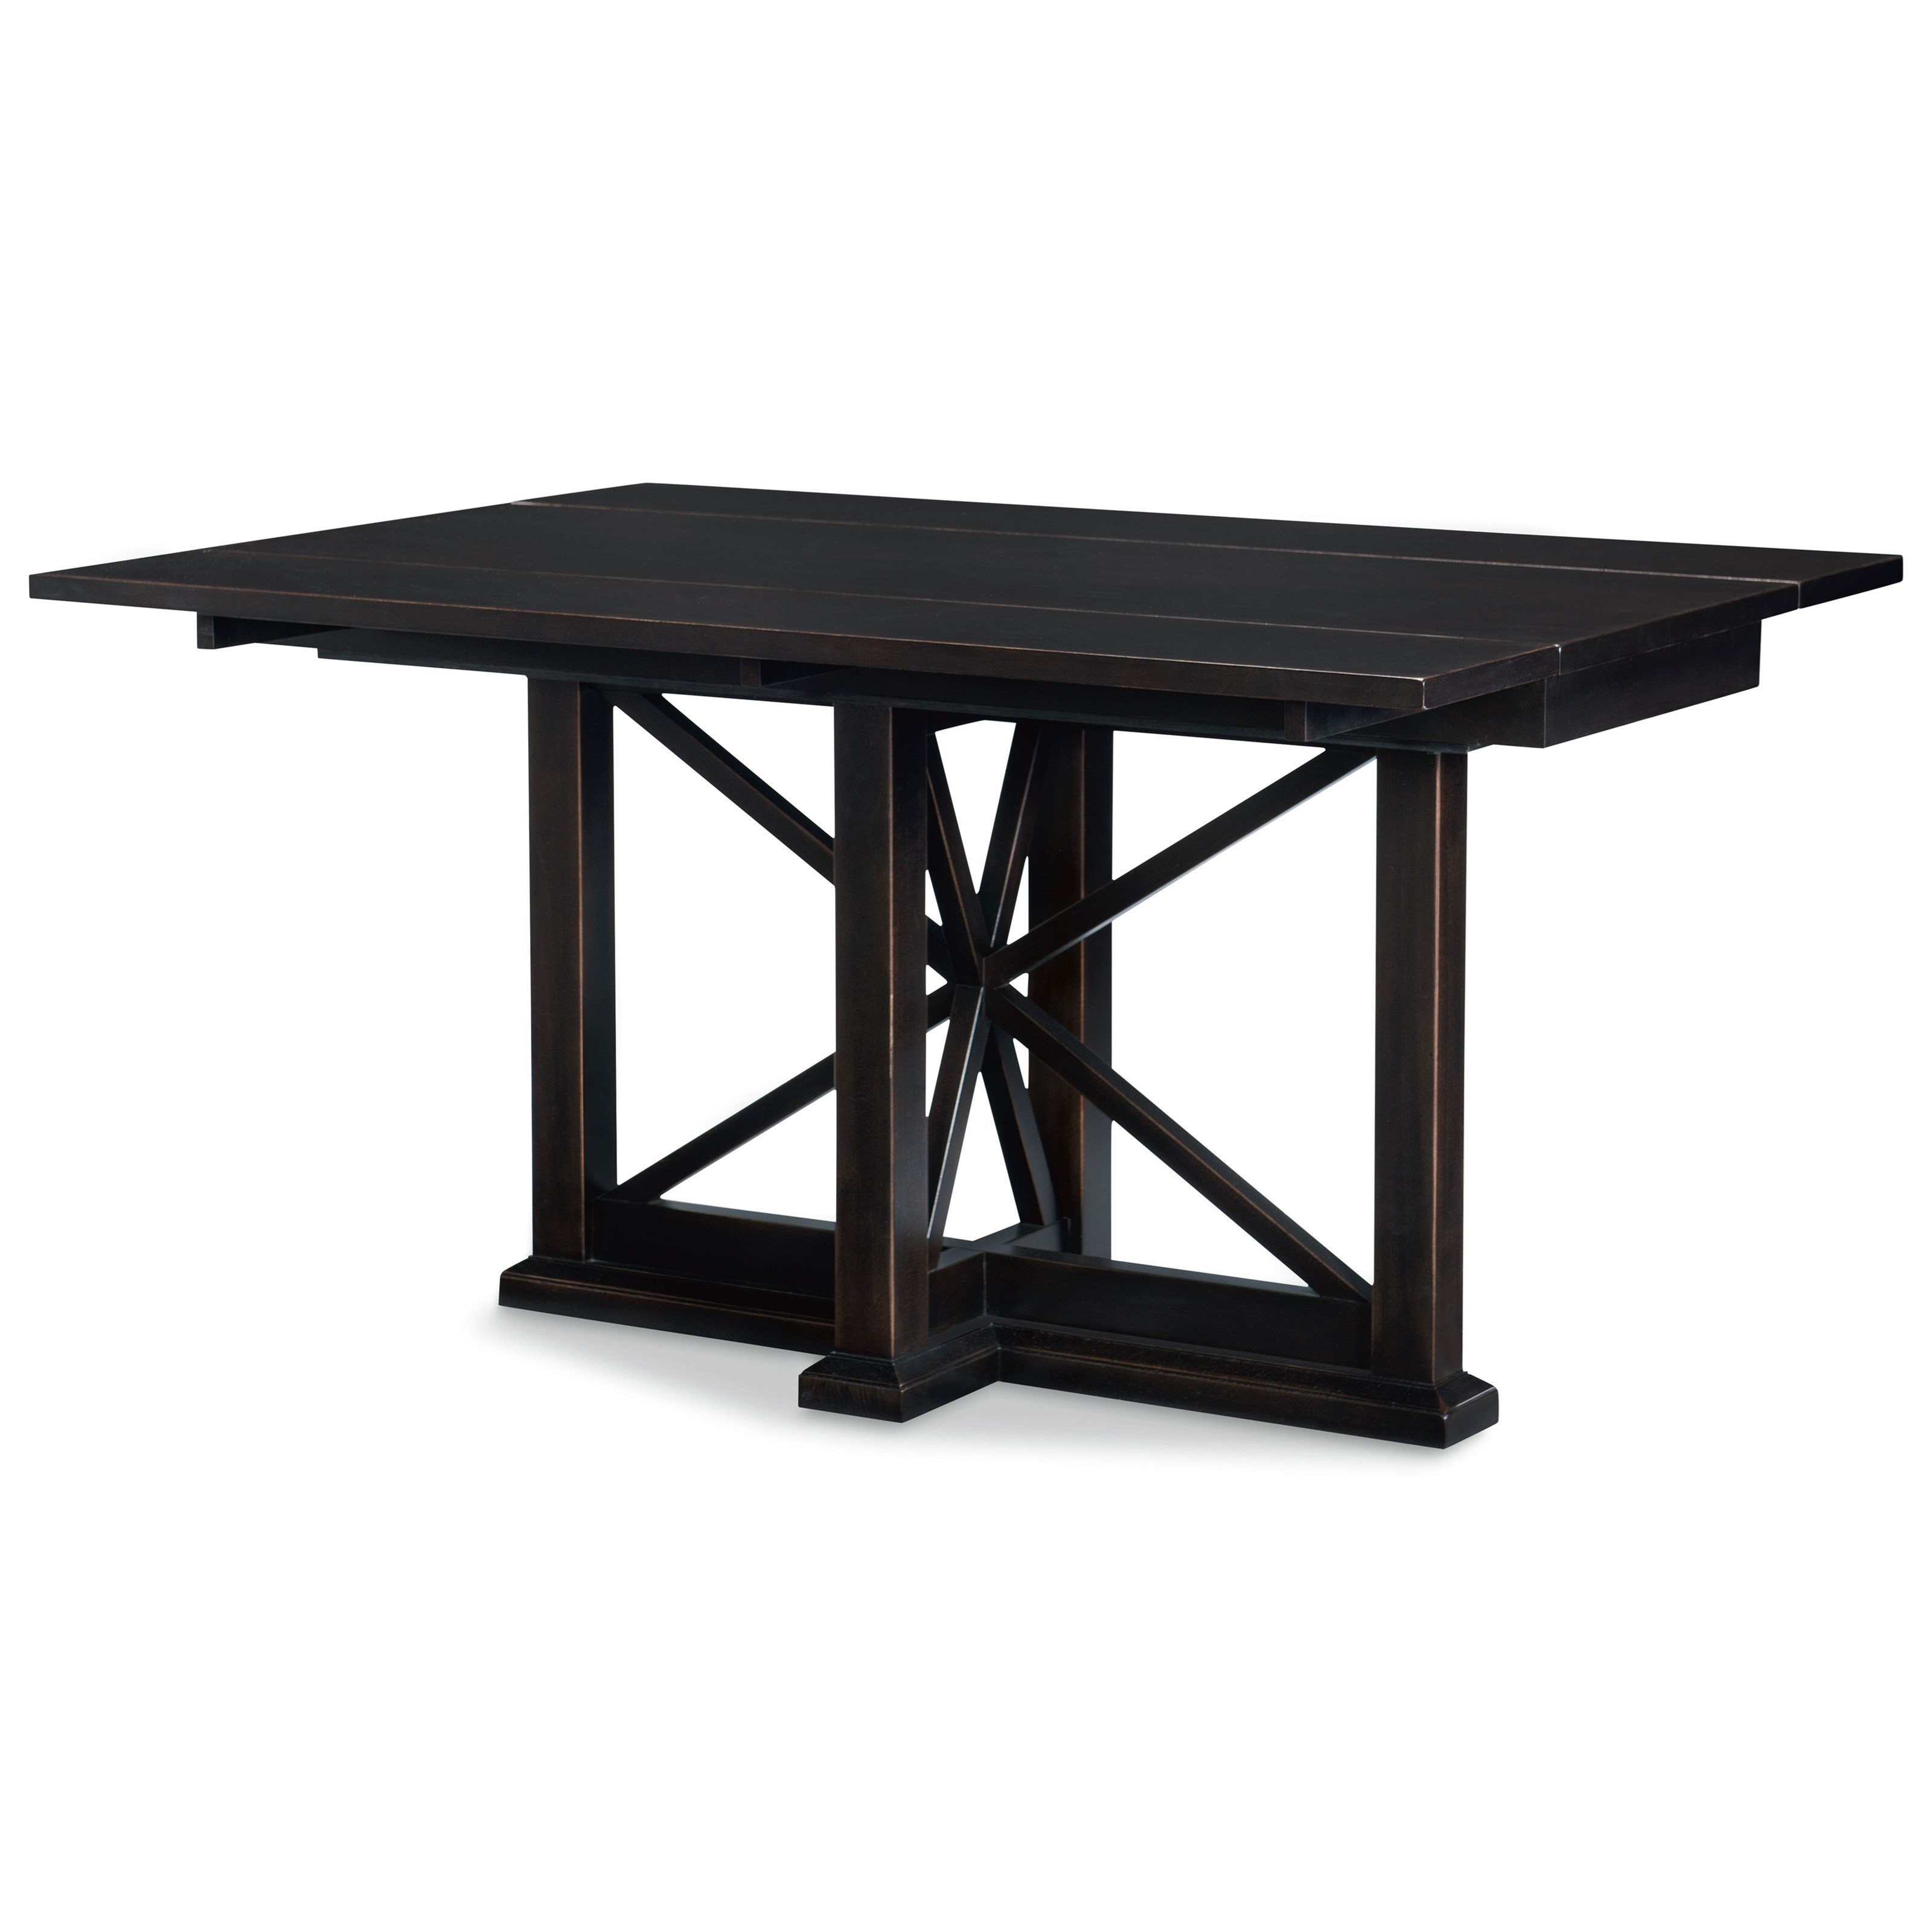 Rachael ray home by legacy classic everyday dining drop for Legacy classic dining table